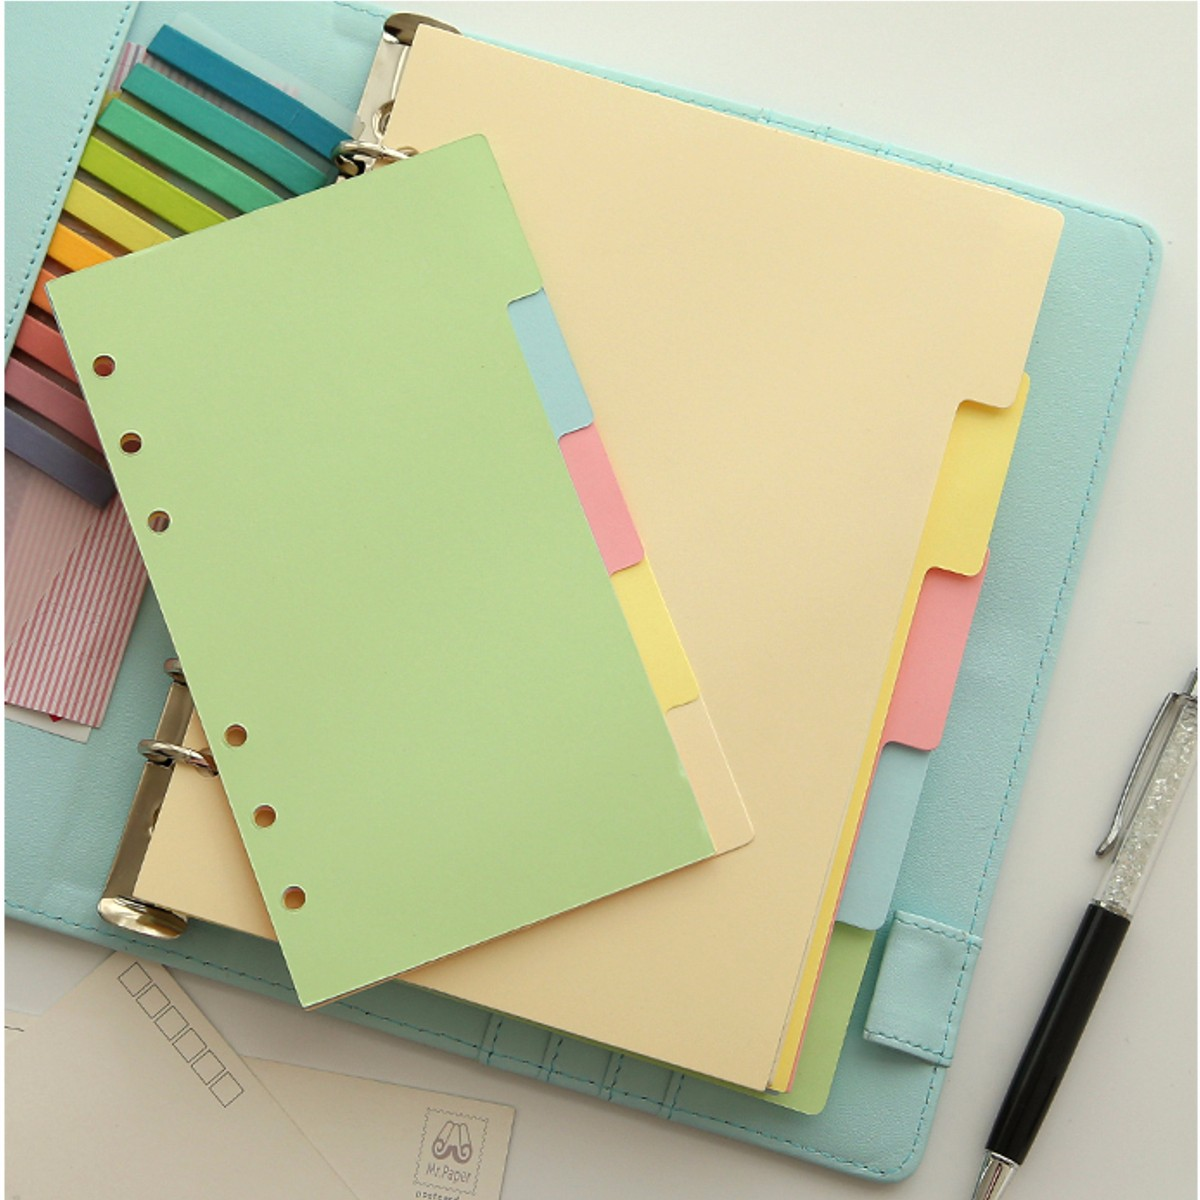 Buy A5/A6 Size Index Multi-Colored Tabs Divider Insert Refill Organiser Note Paper